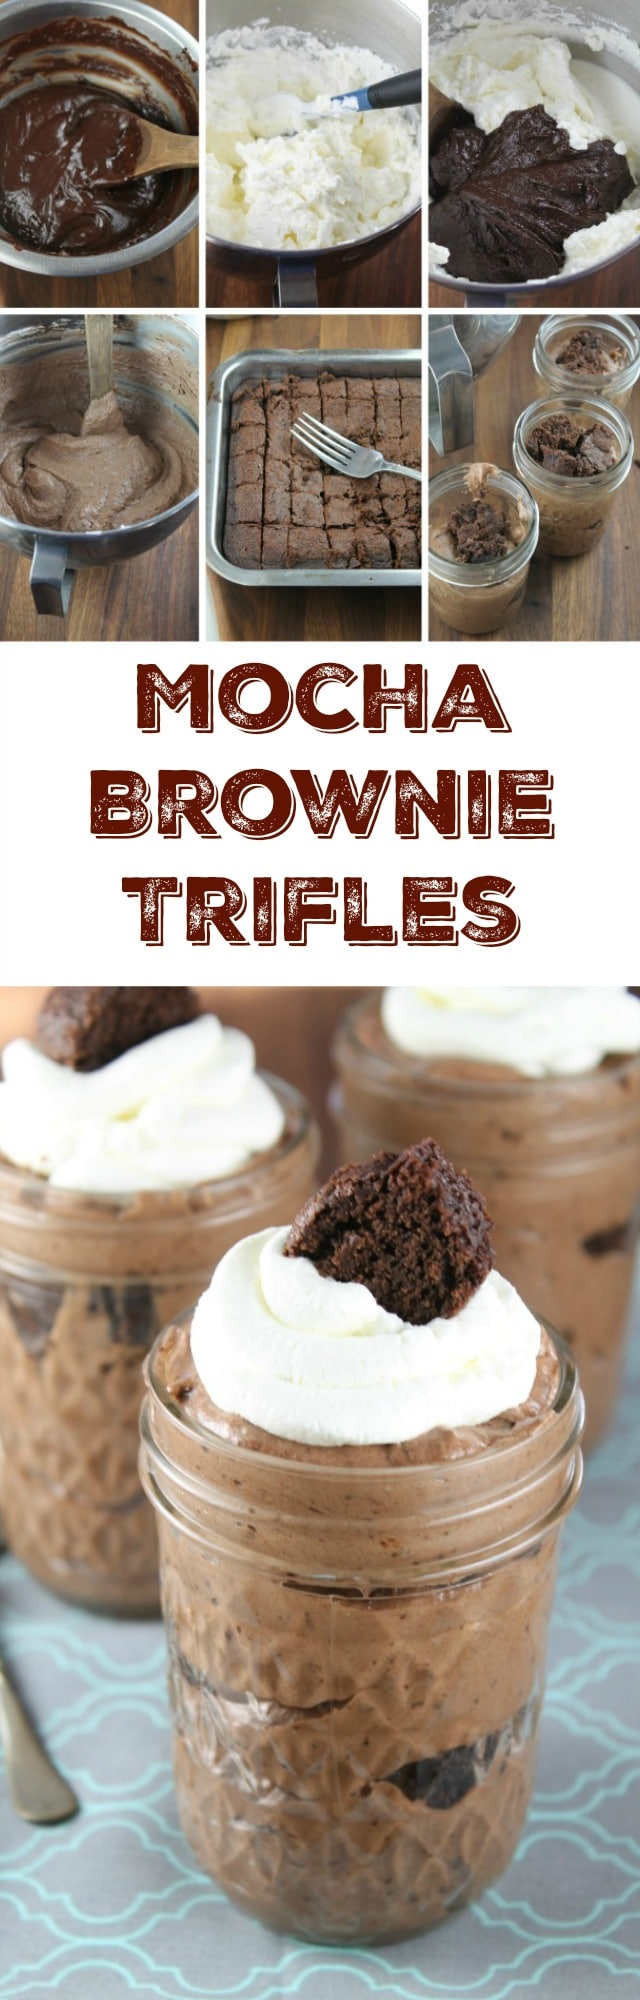 Recipe for Mocha Brownie Trifles found at MissintheKitchen.com #KACraftCoffee